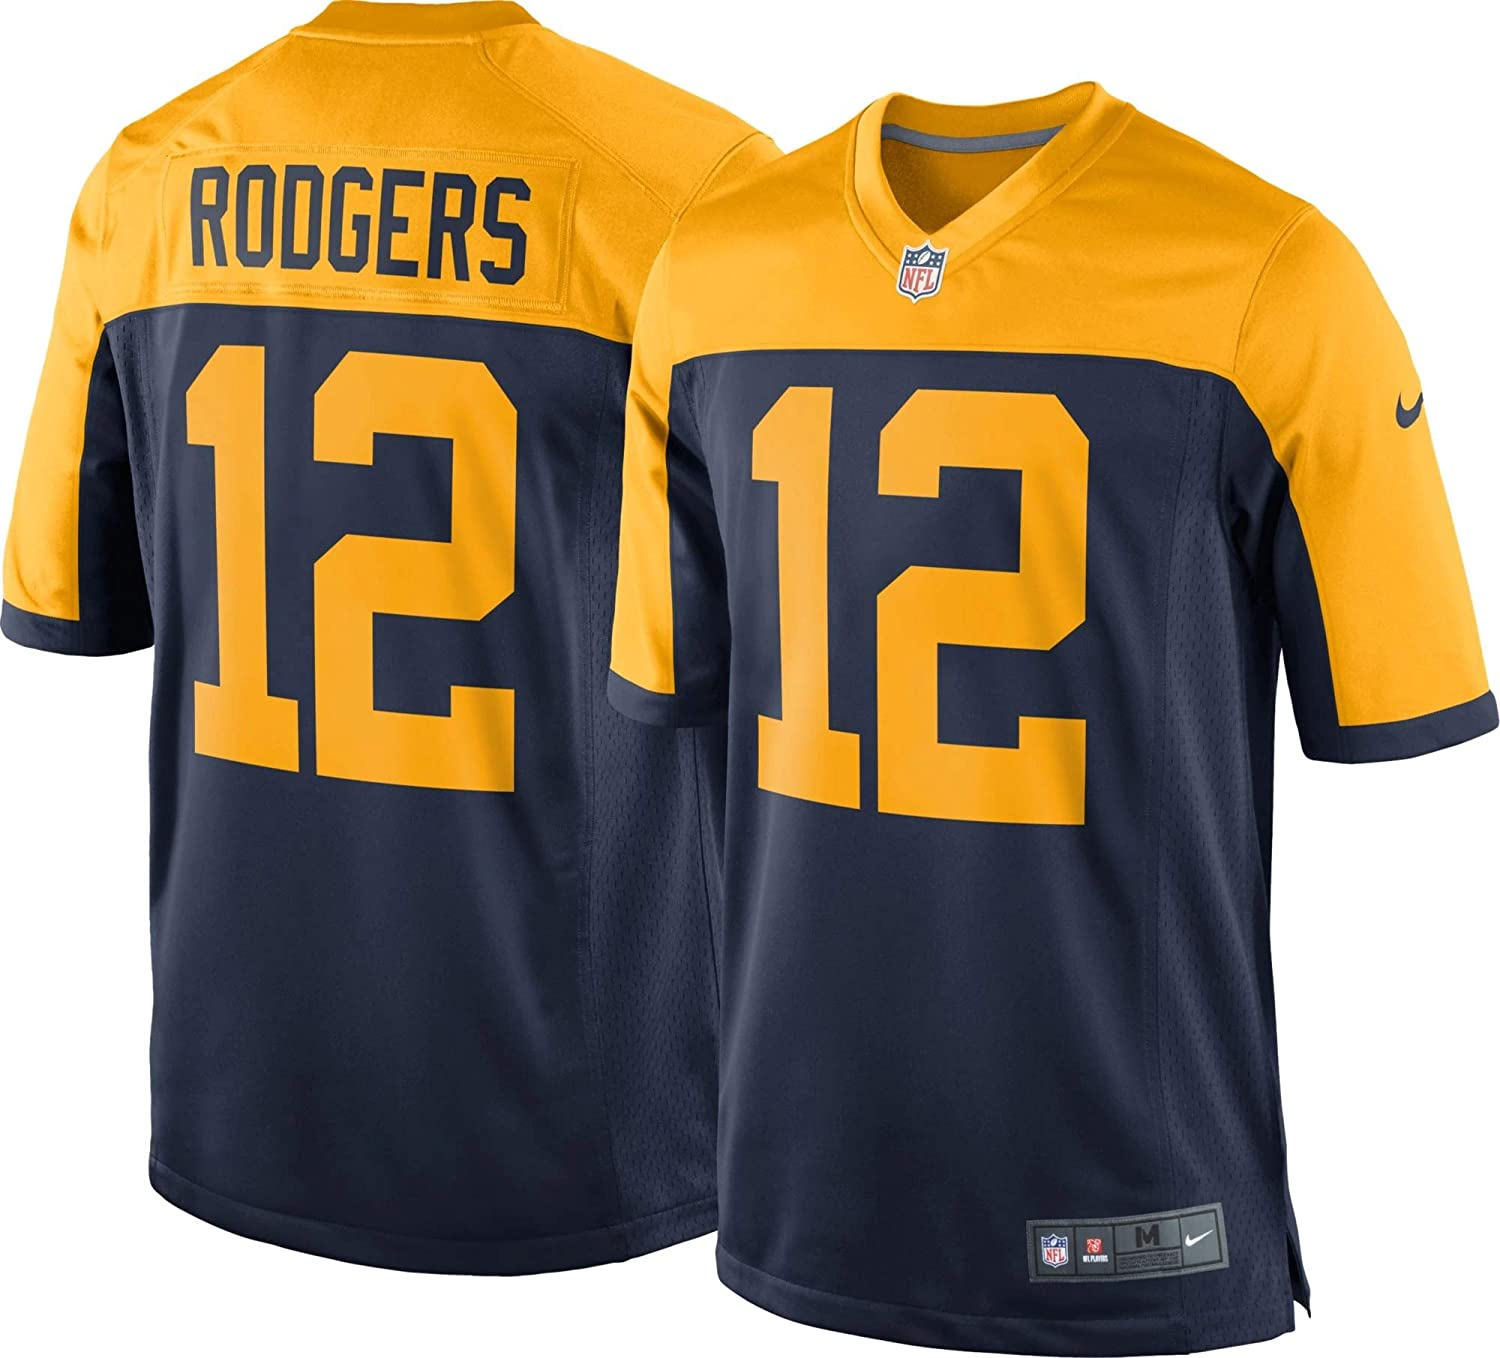 Nike Aaron Rodgers Green Bay Packers NFL Boys Youth 8-20 Navy Alternate On-Field Jersey